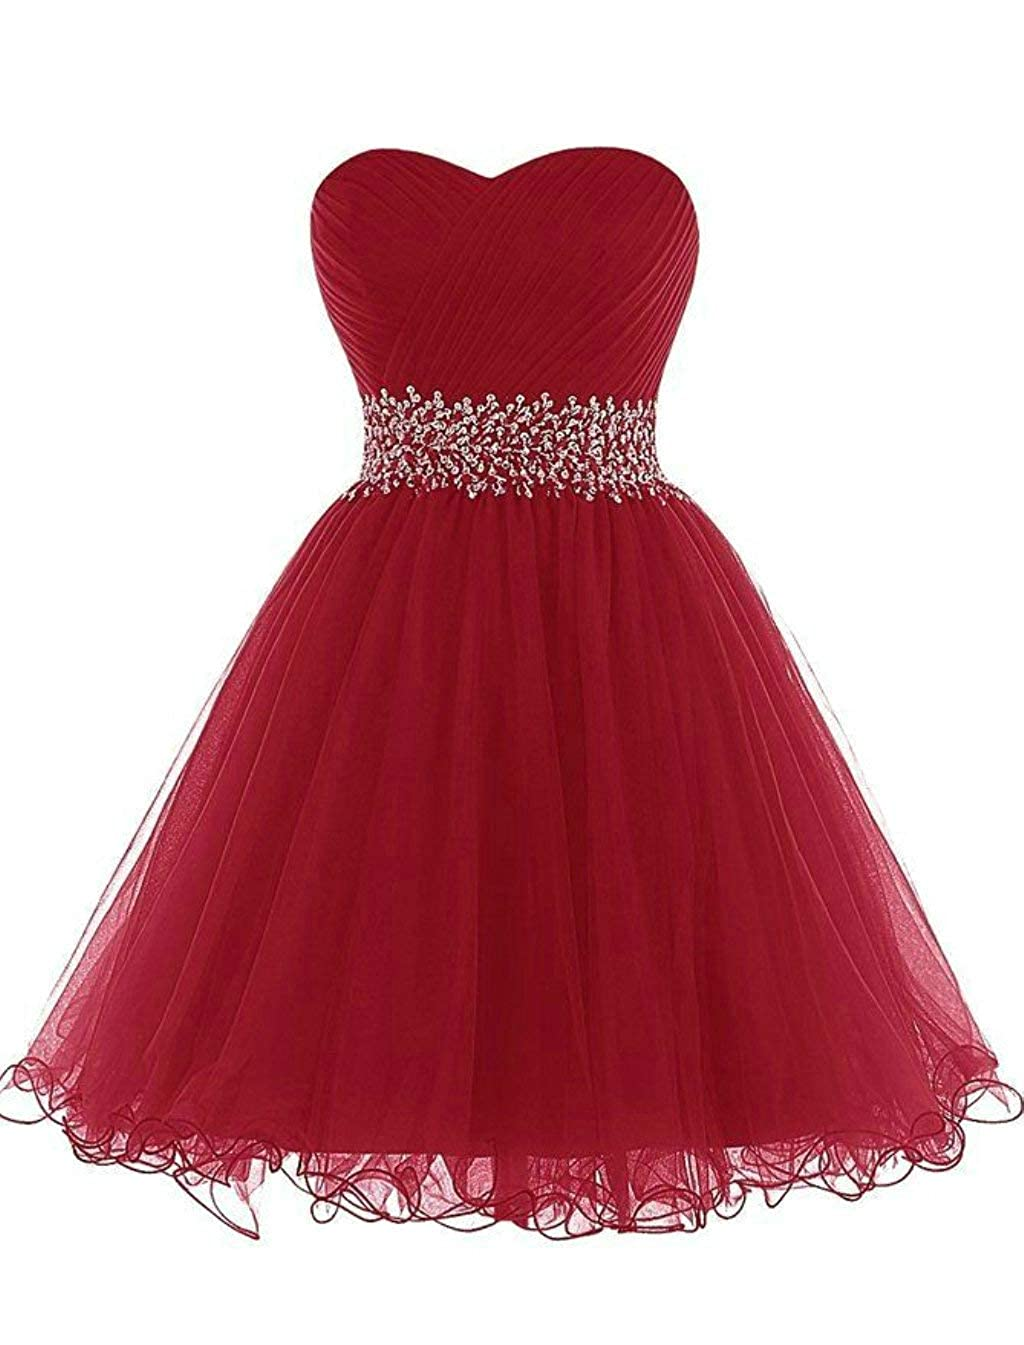 Burgundy Vantexi Women's Beaded Tulle Short Prom Bridesmaid Dress Formal Party Gown